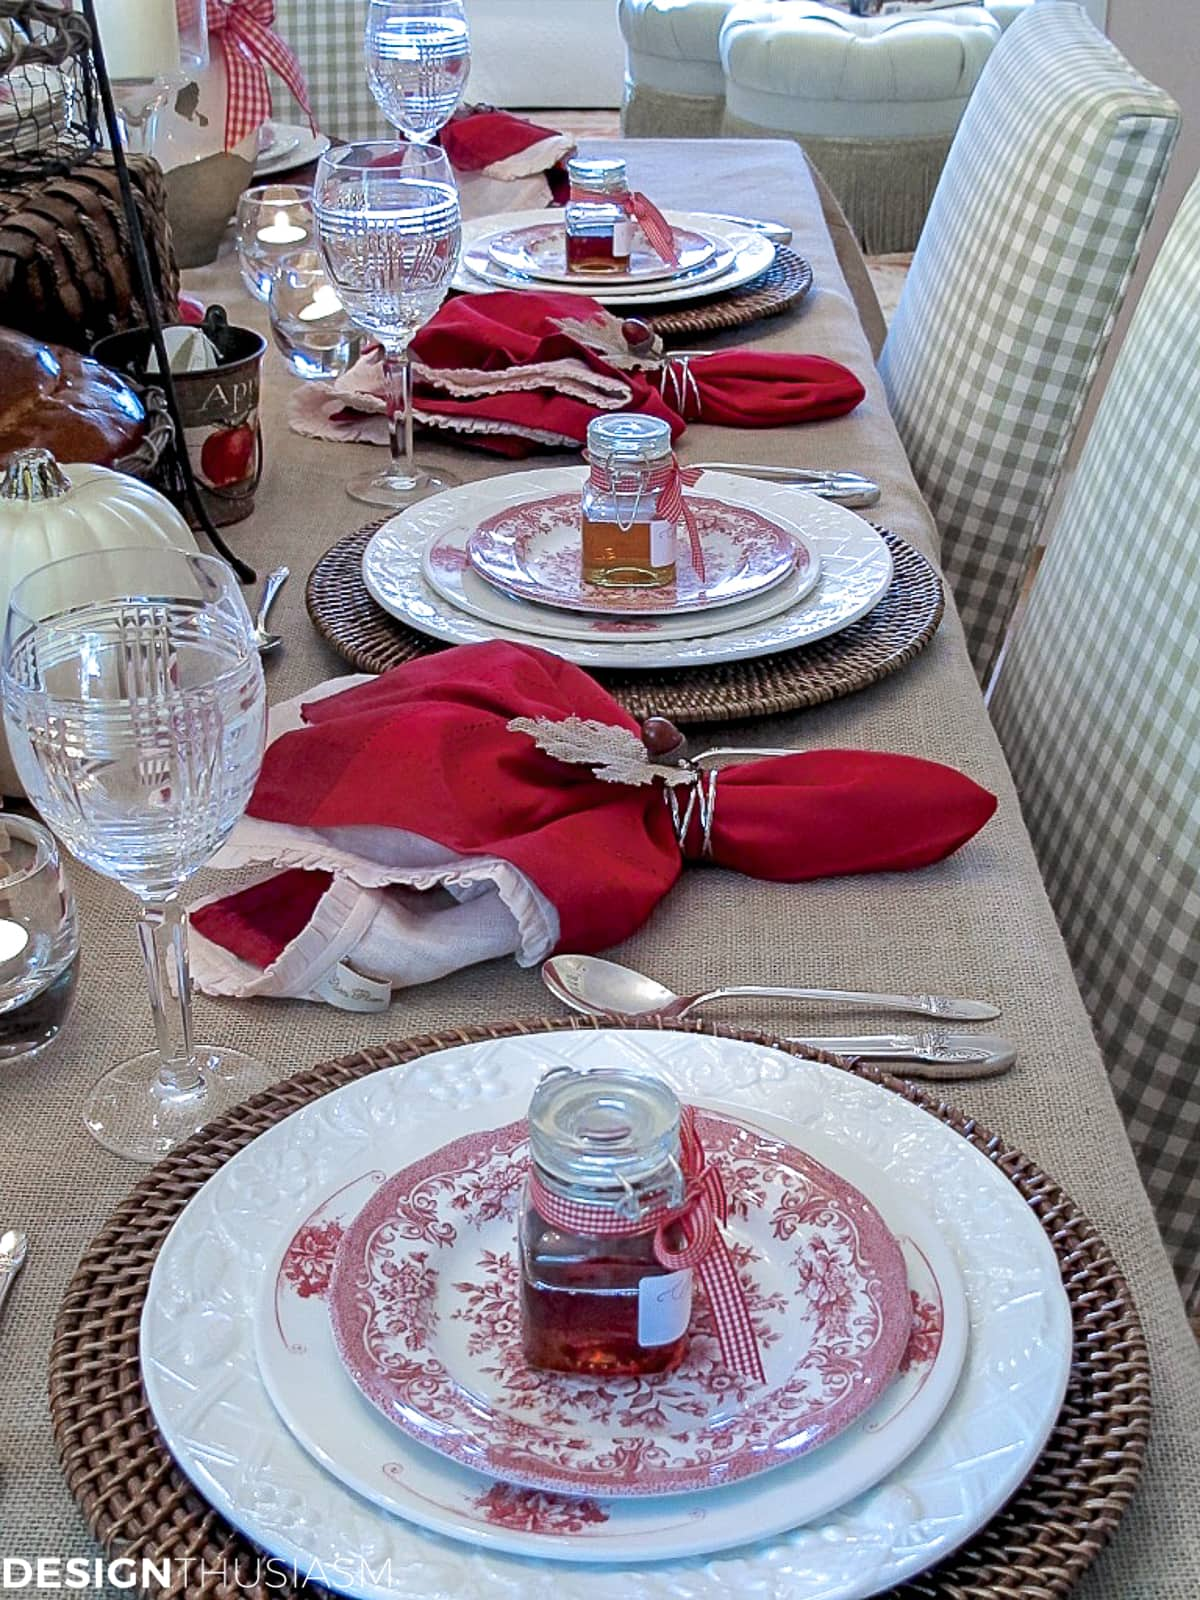 apples and honey at each place setting for Rosh Hashanah dinner